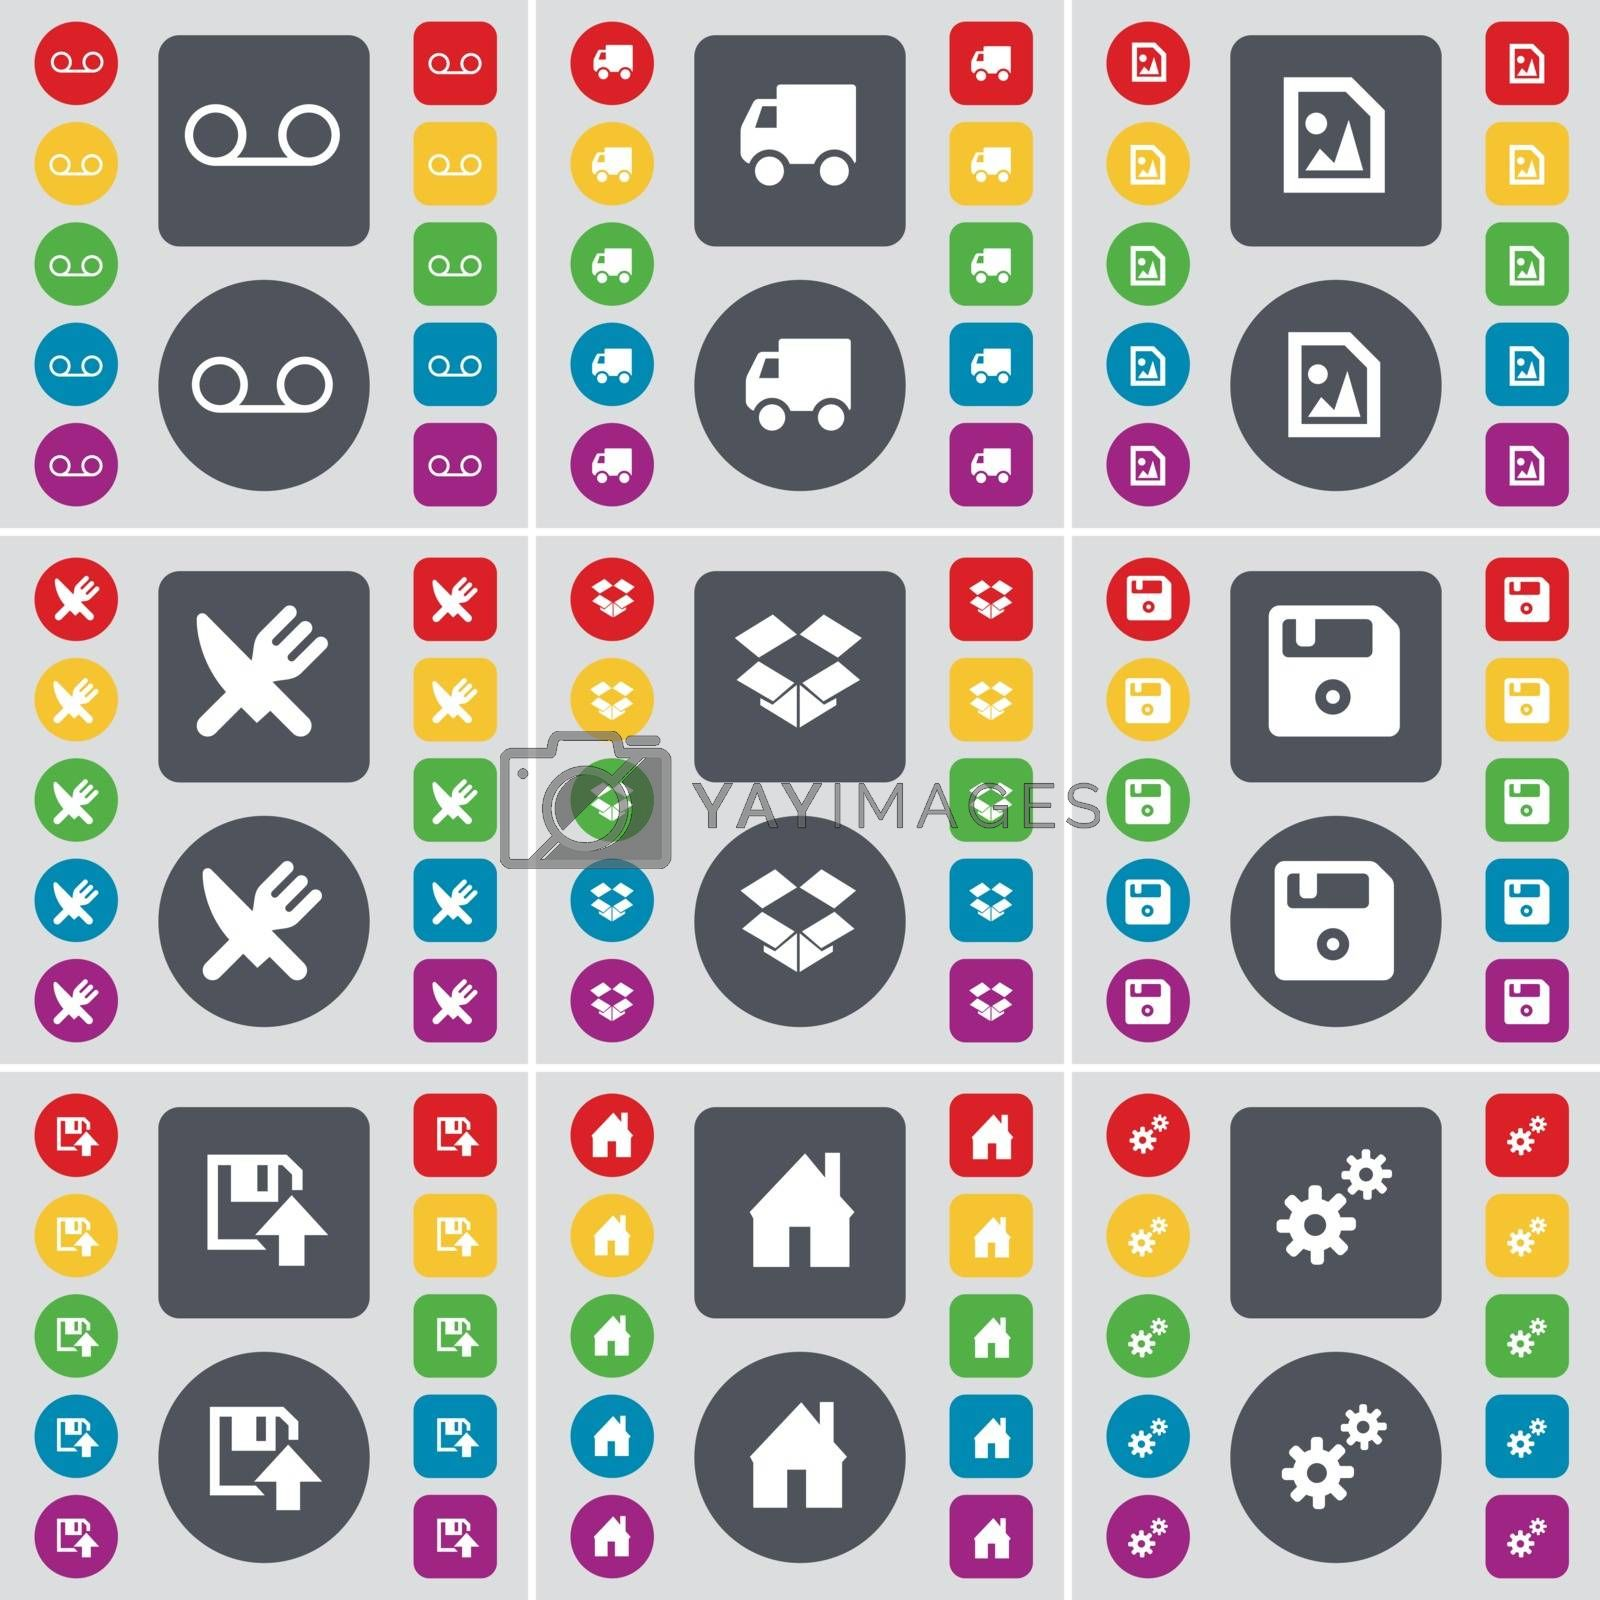 Royalty free image of Cassette, Truck, Media file, Fork and knife, Dropbox, Floppy, House, Gears icon symbol. A large set of flat, colored buttons for your design. Vector by serhii_lohvyniuk